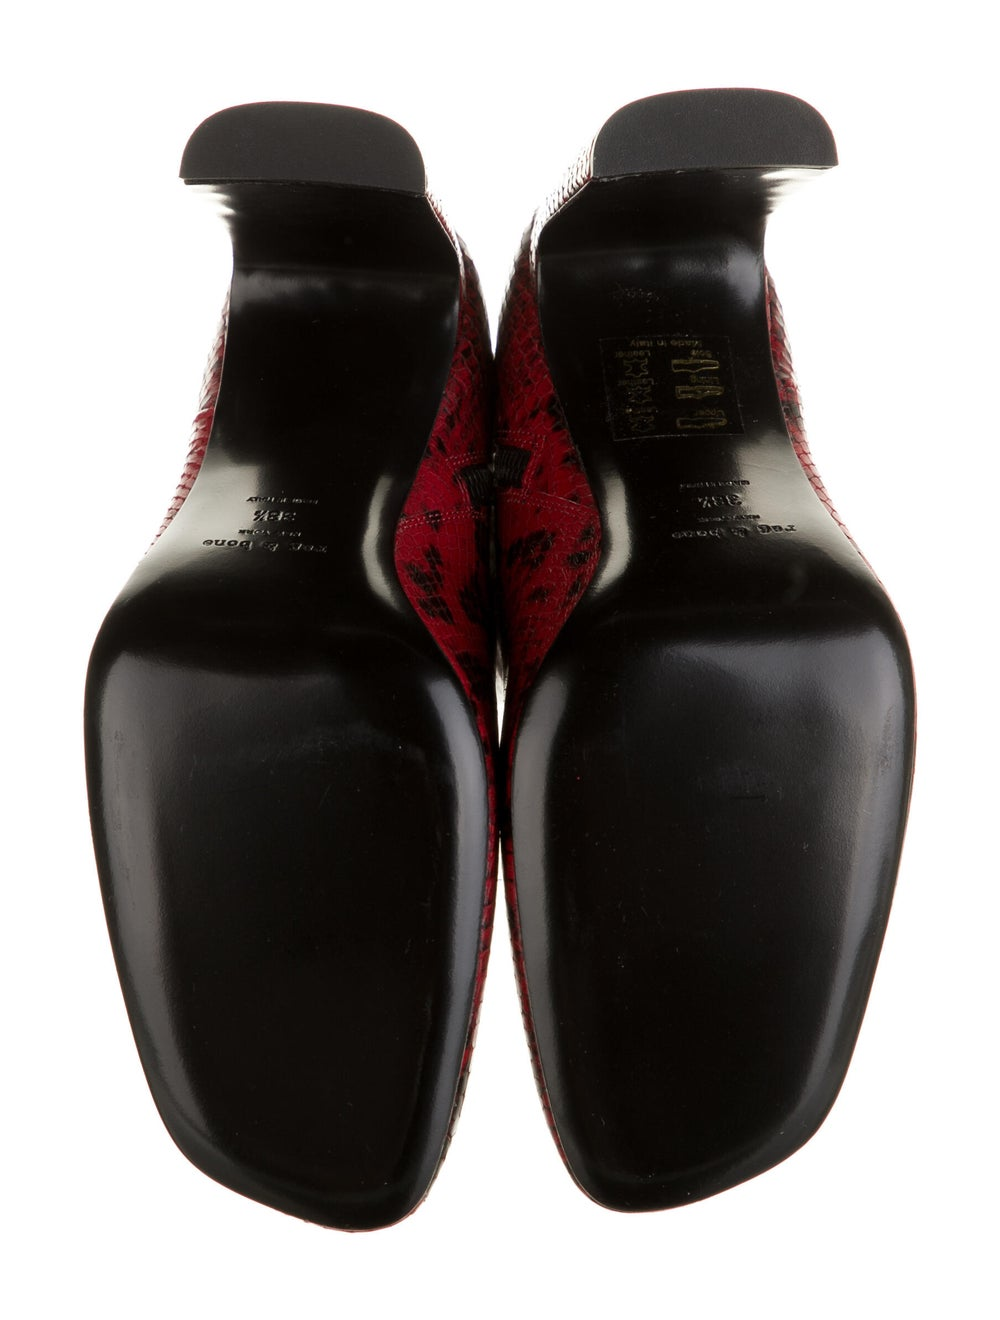 Rag & Bone Embossed Leather Boots Red - image 5